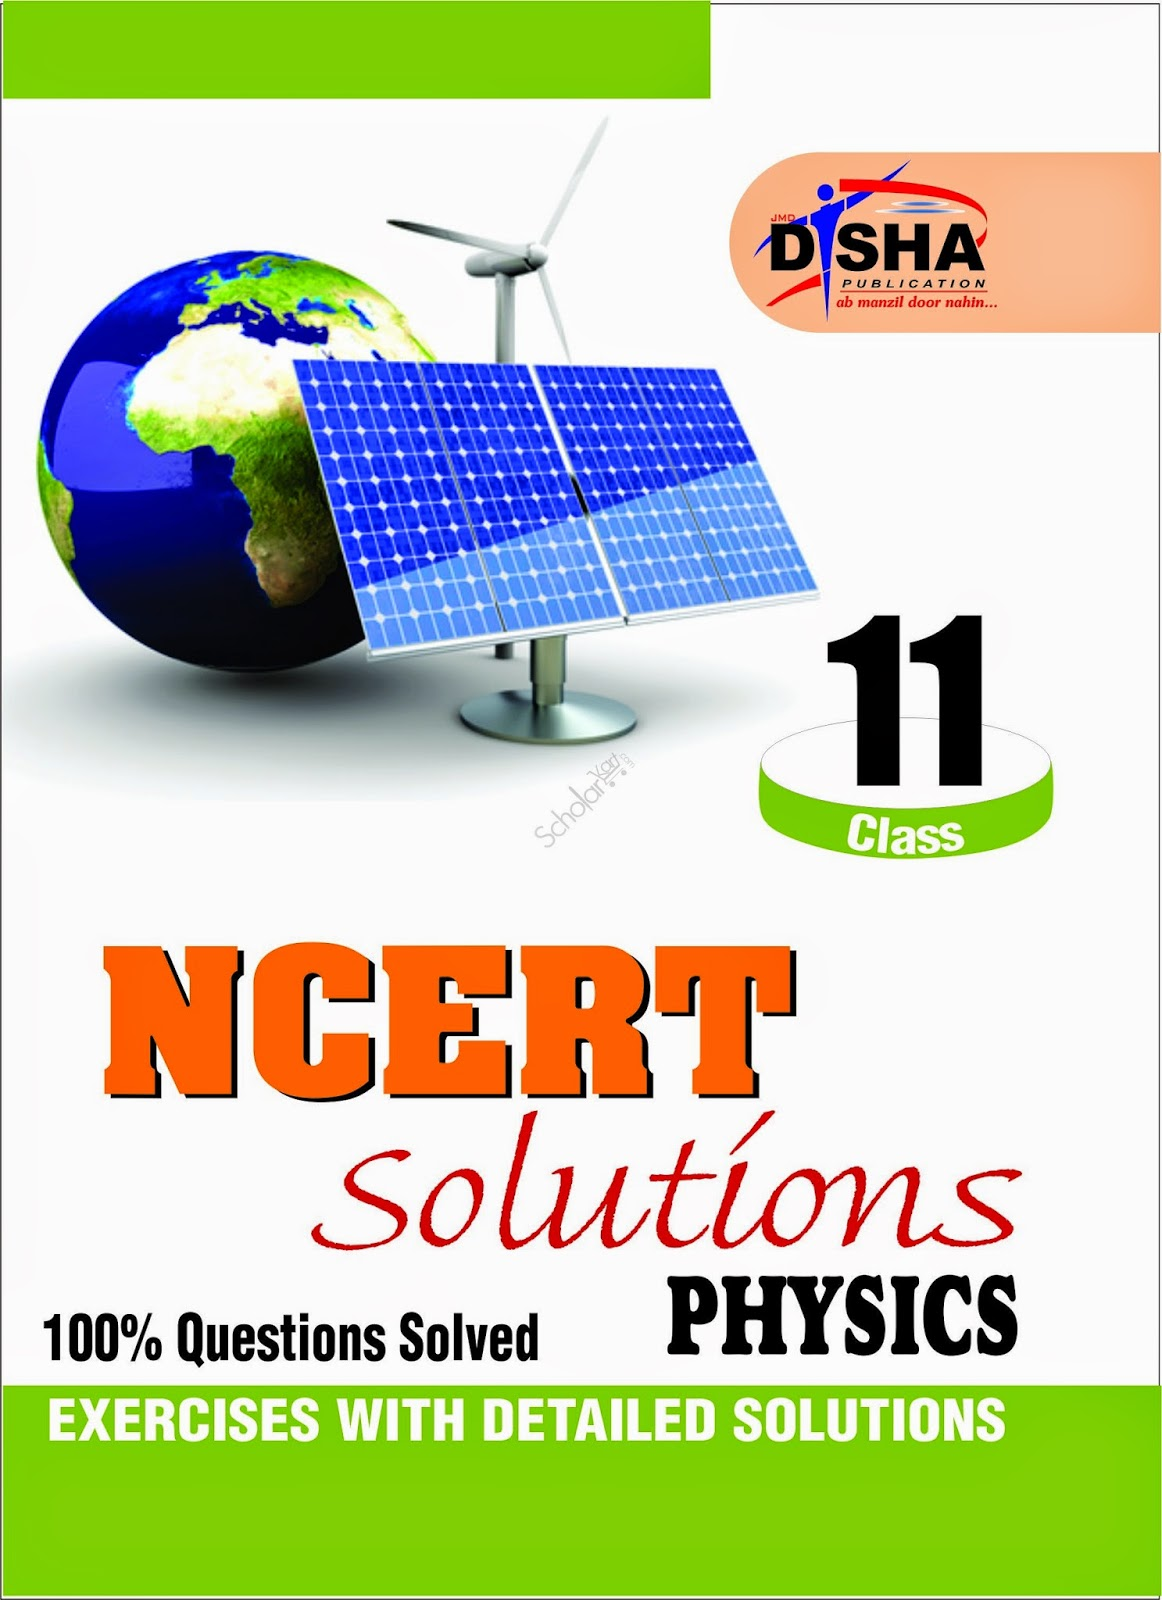 physics solution Access our free college textbooks and low-cost learning materials.